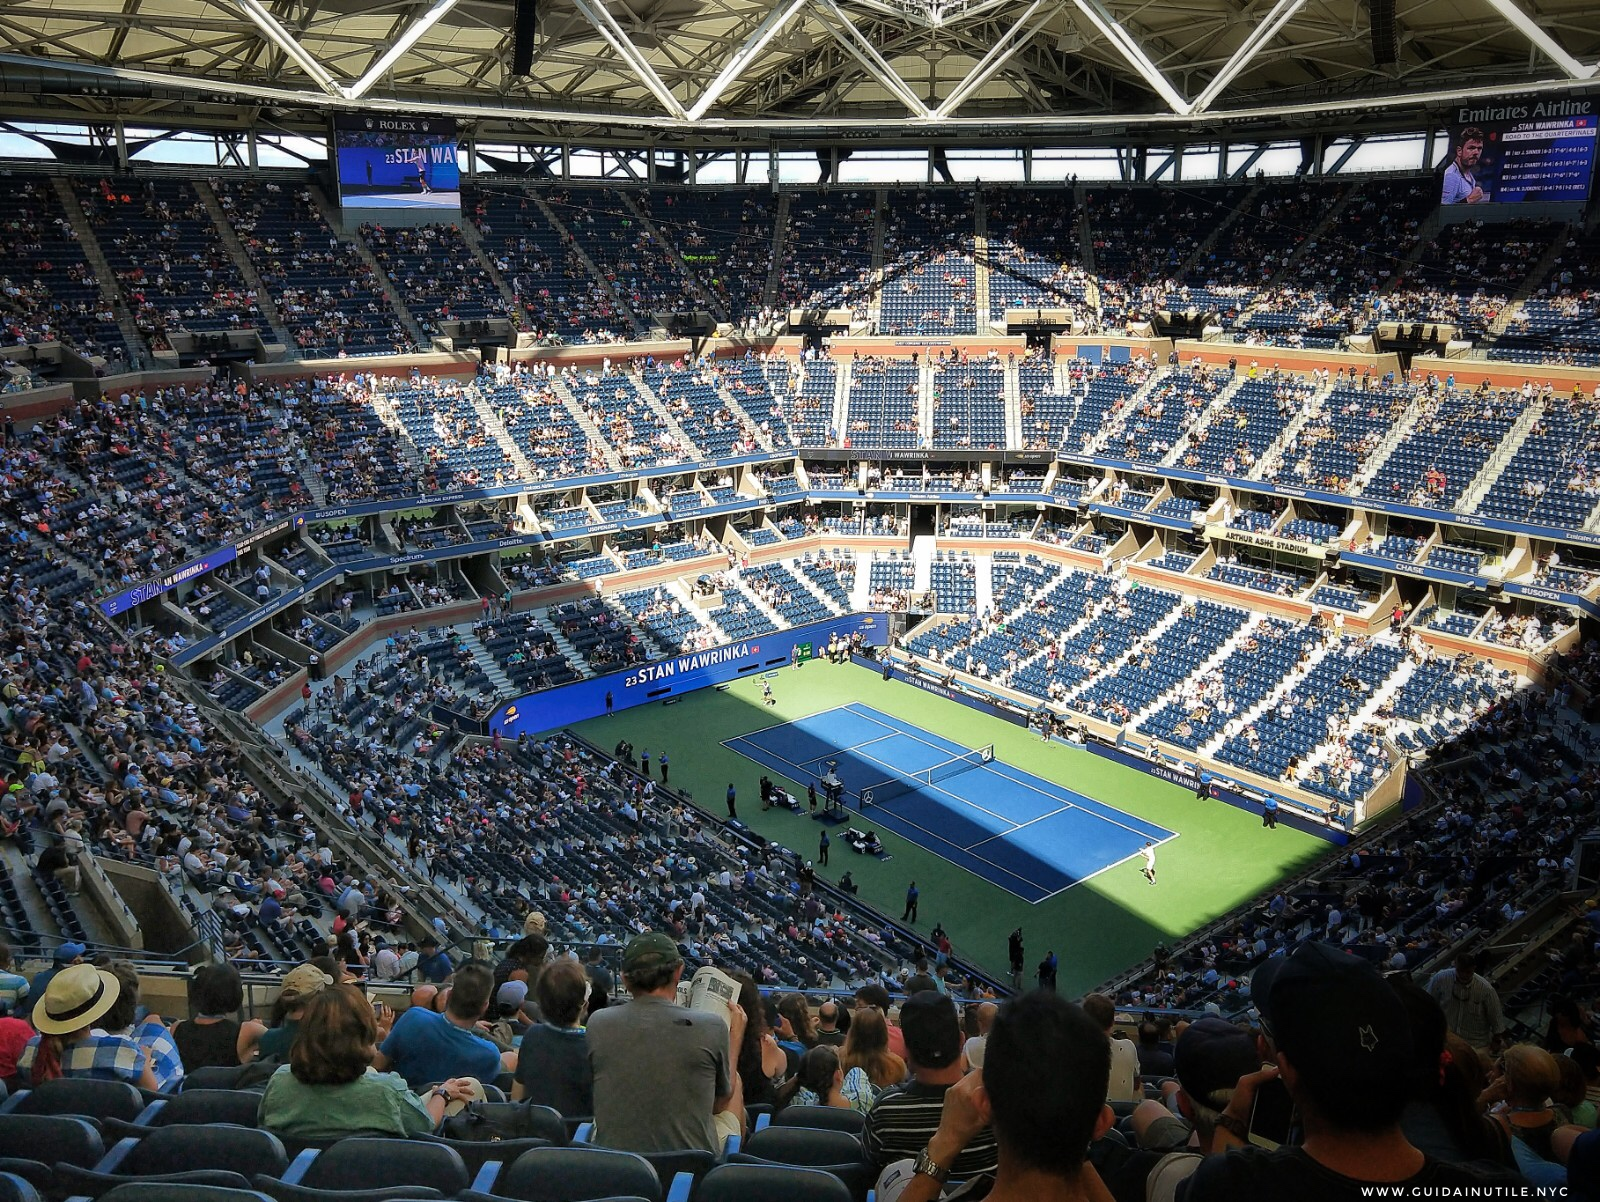 US Open, Arthur Ashe Stadium, USTA Billie Jean King National Tennis Center, US Open 2019